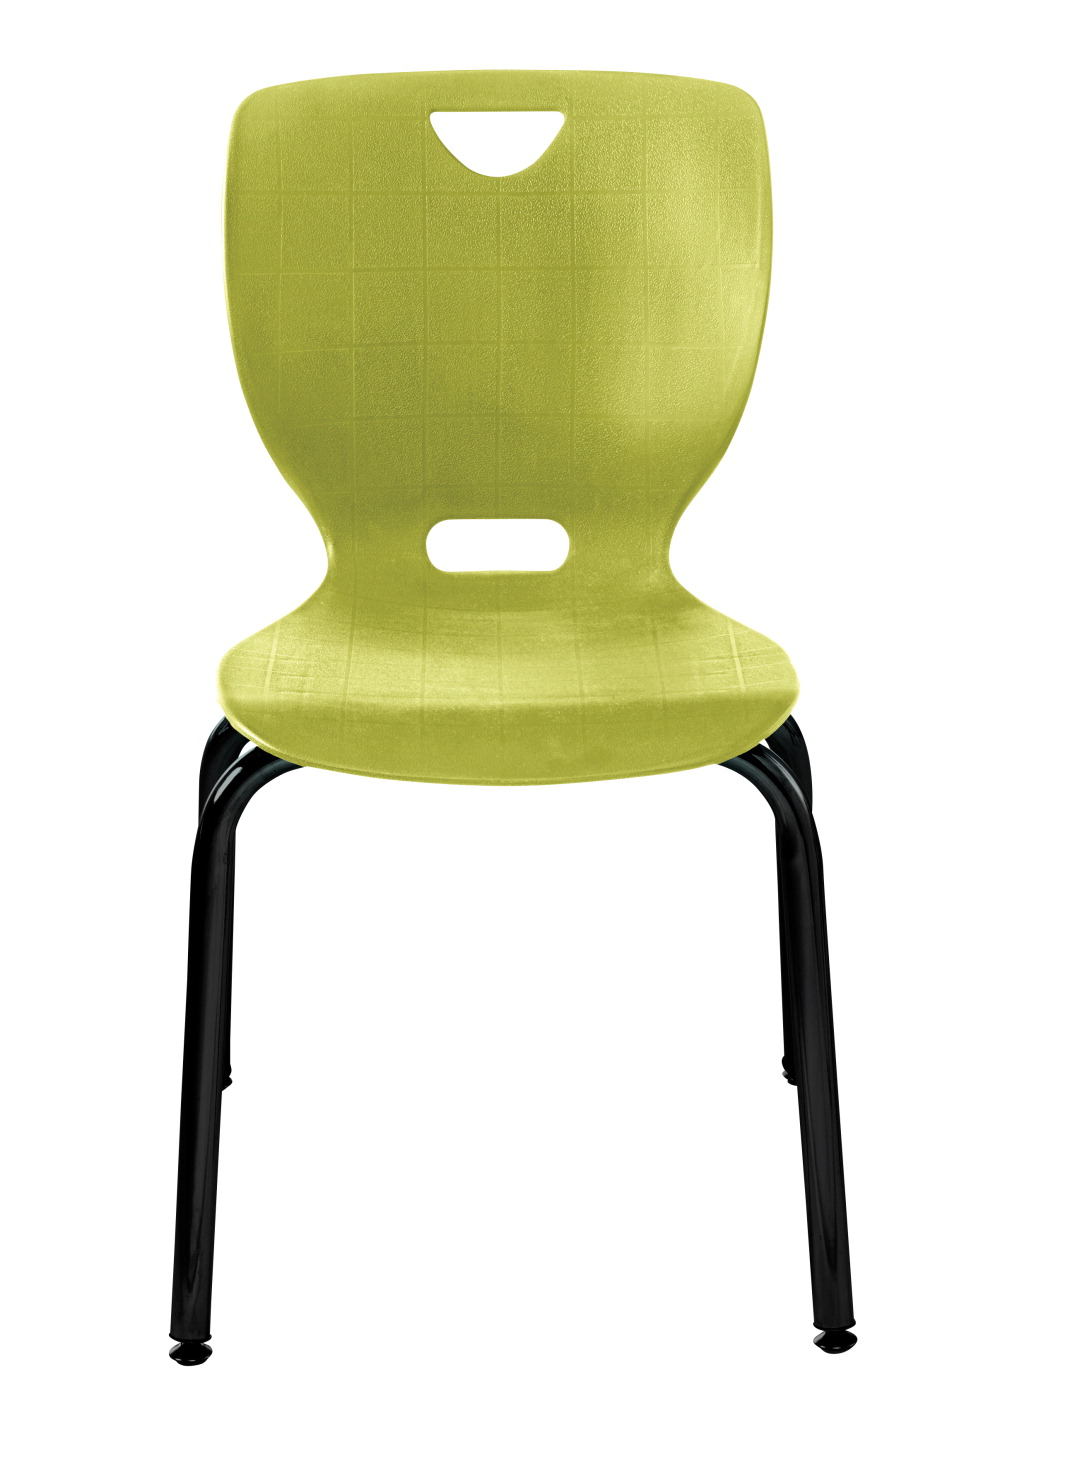 Classroom Select NeoClass Smooth Back Chair, 18 Inch Seat Height, Various Options